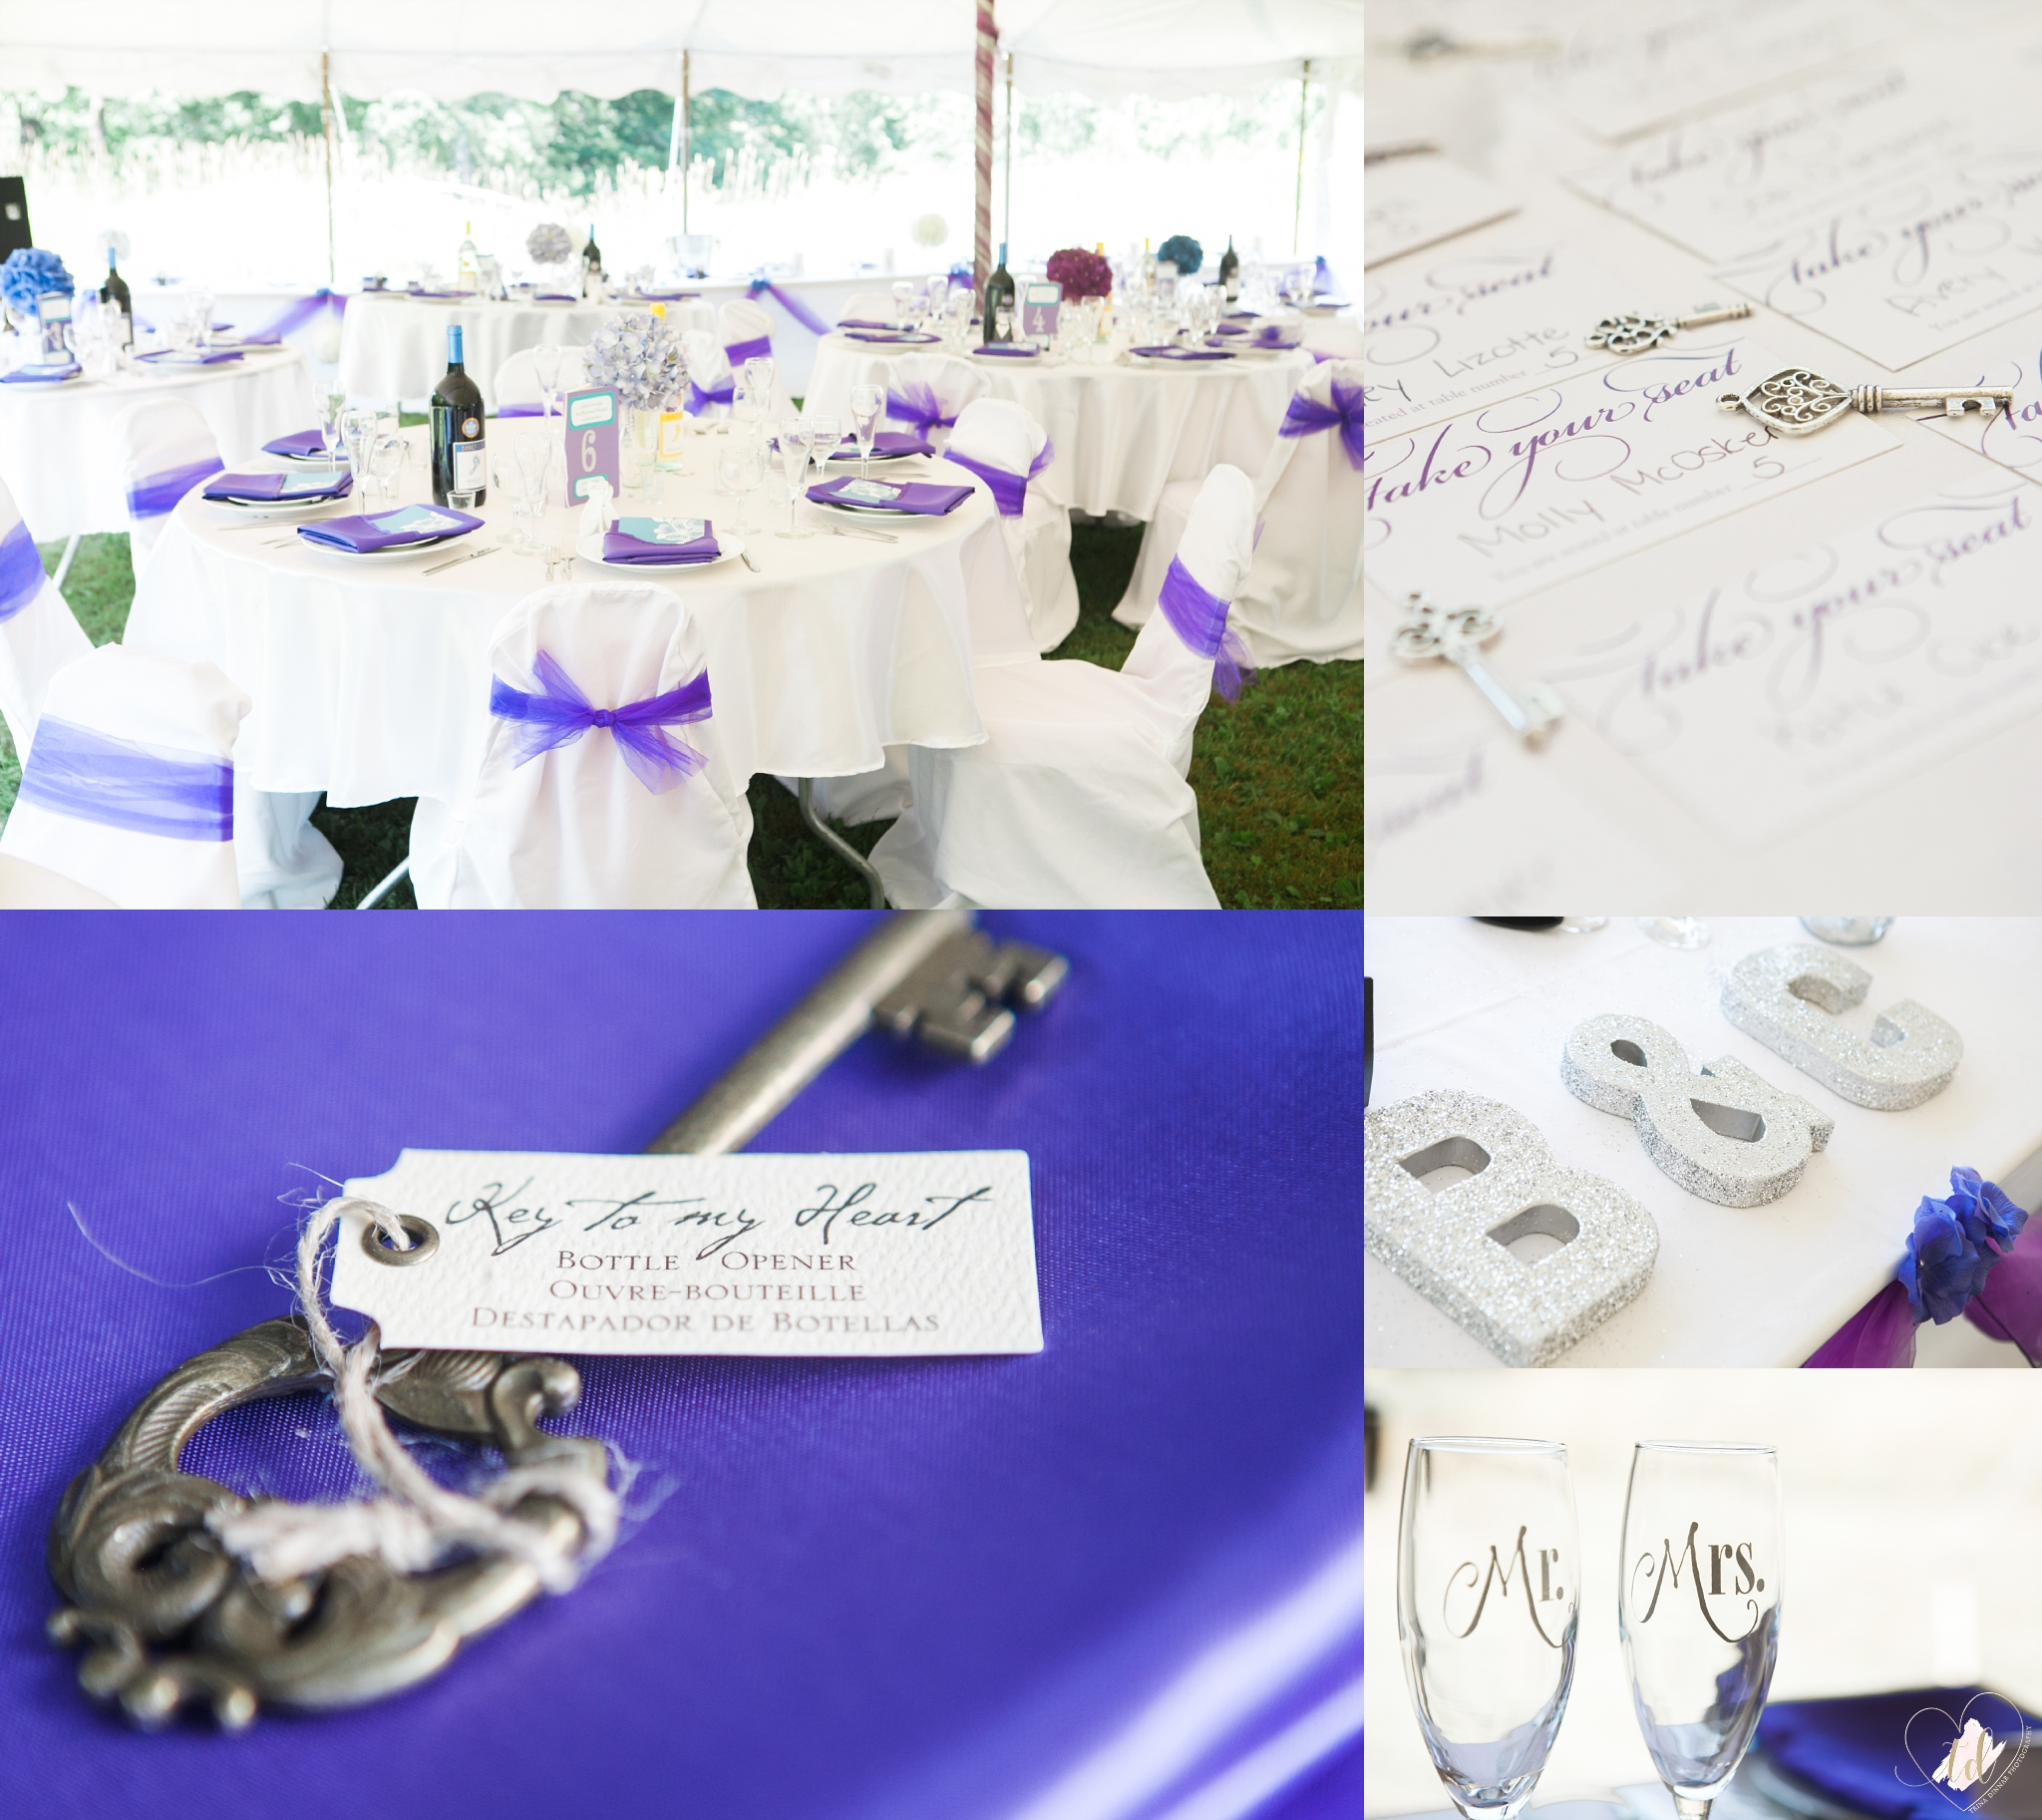 Wedding reception decor of purple, blue and teal with little keys.